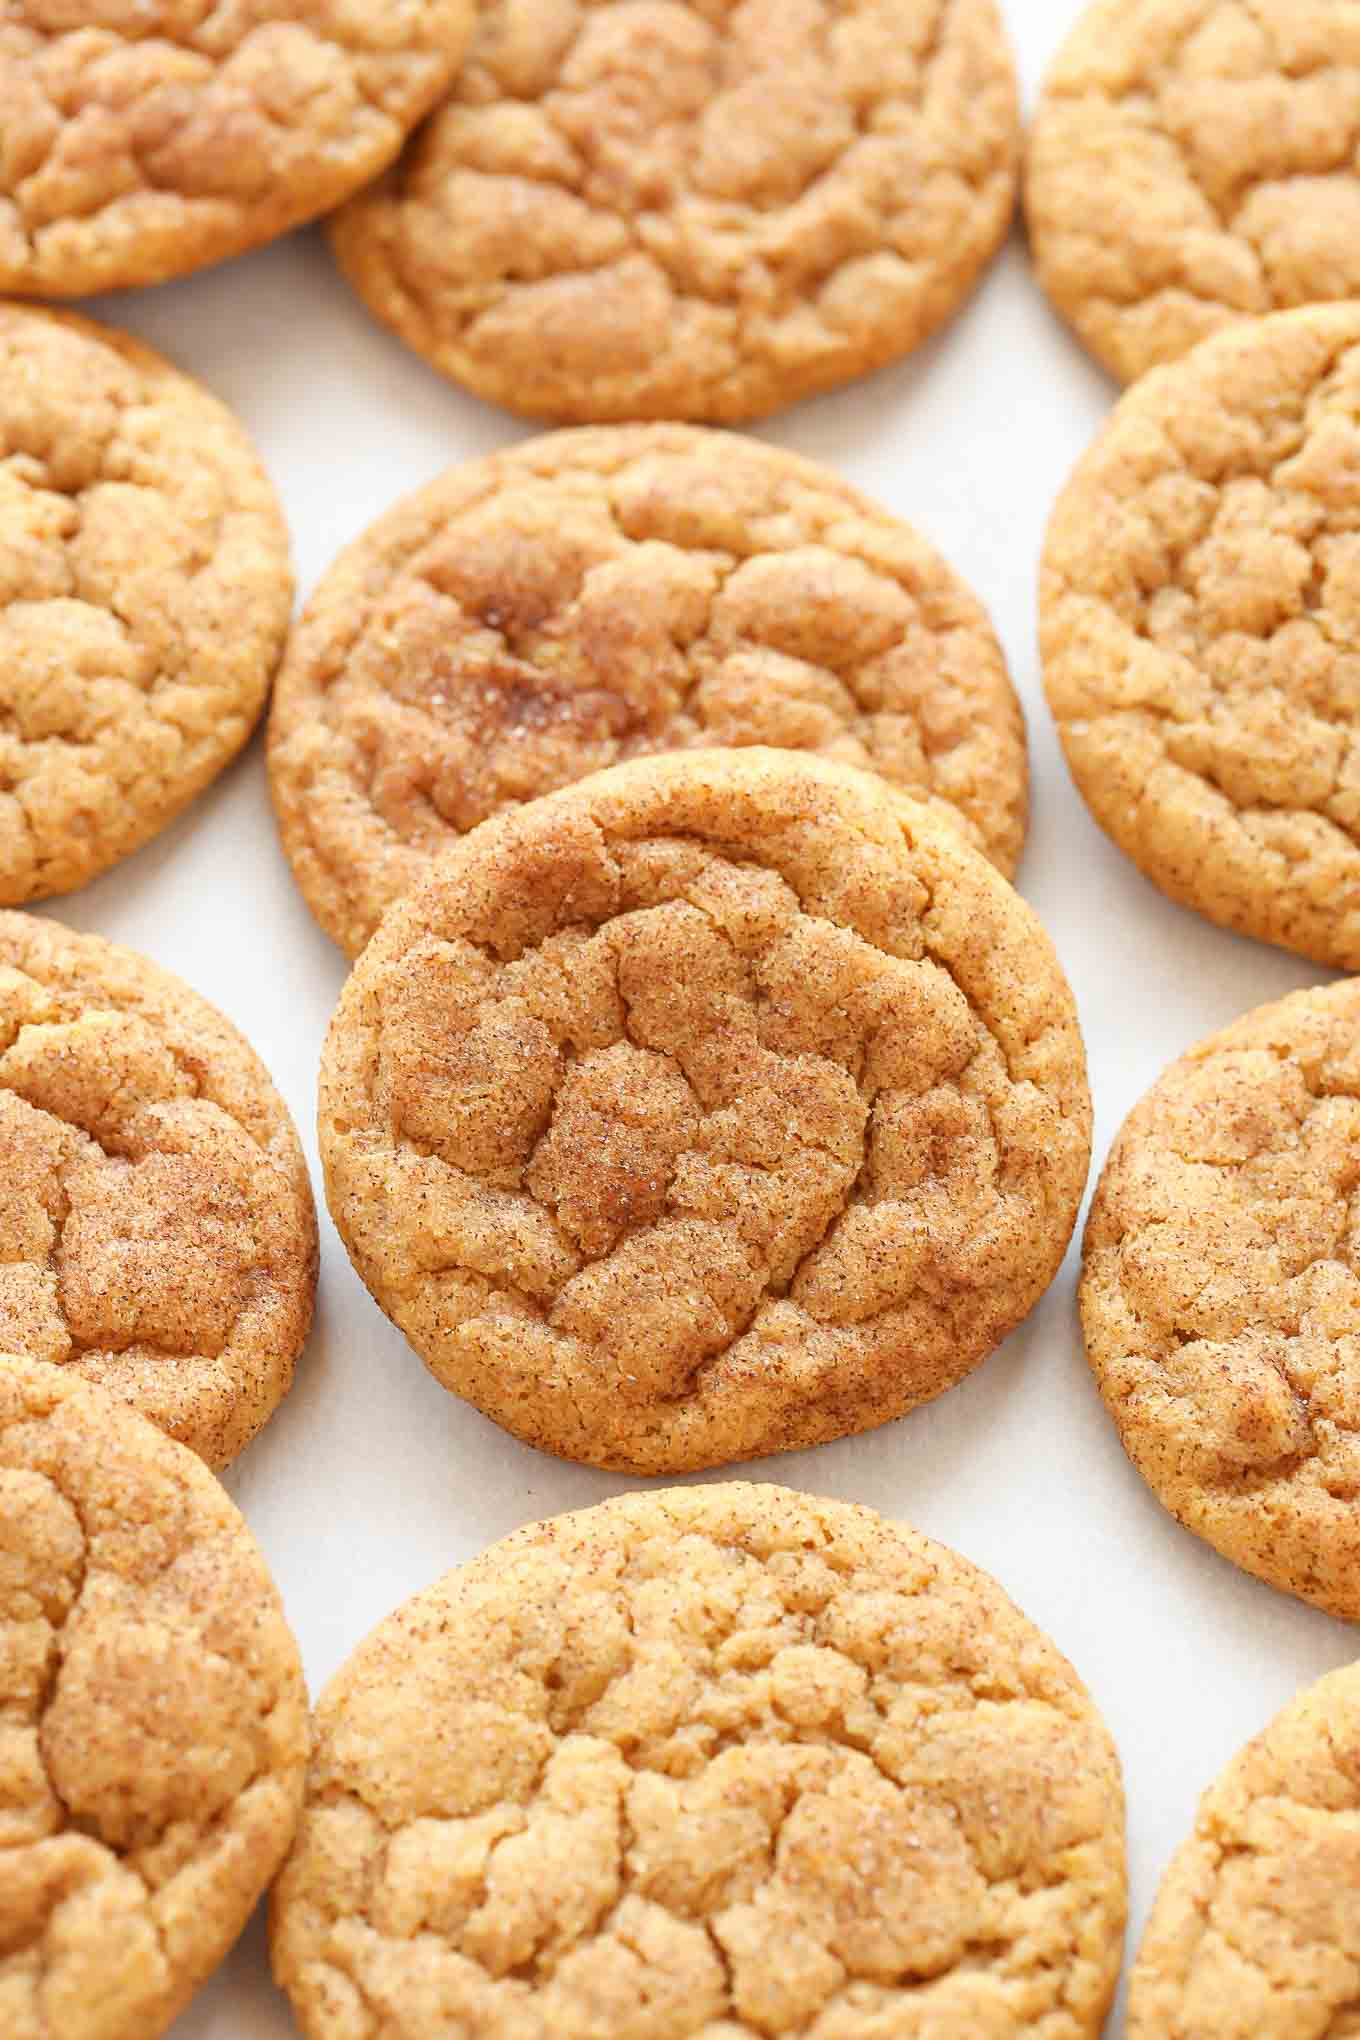 These Pumpkin Snickerdoodles are super soft and chewy (not cakey!), made with real pumpkin, and coated in cinnamon and sugar. A perfect cookie recipe for fall!